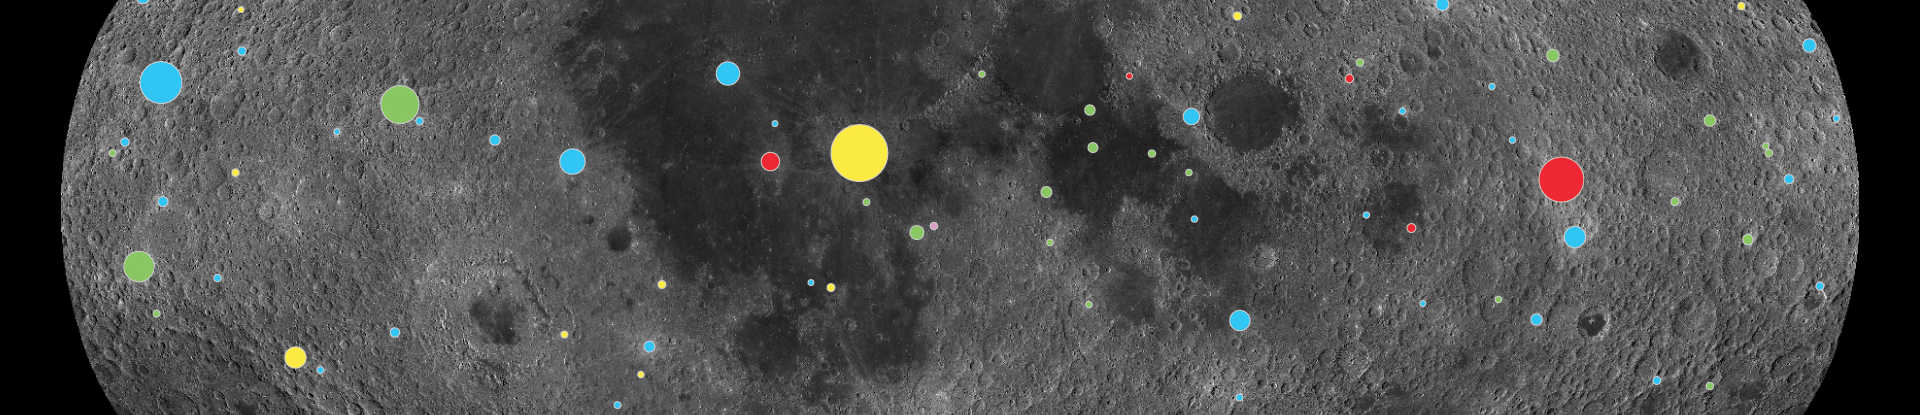 Press Release-SwRI scientists study Moon craters to understand Earth's impact history